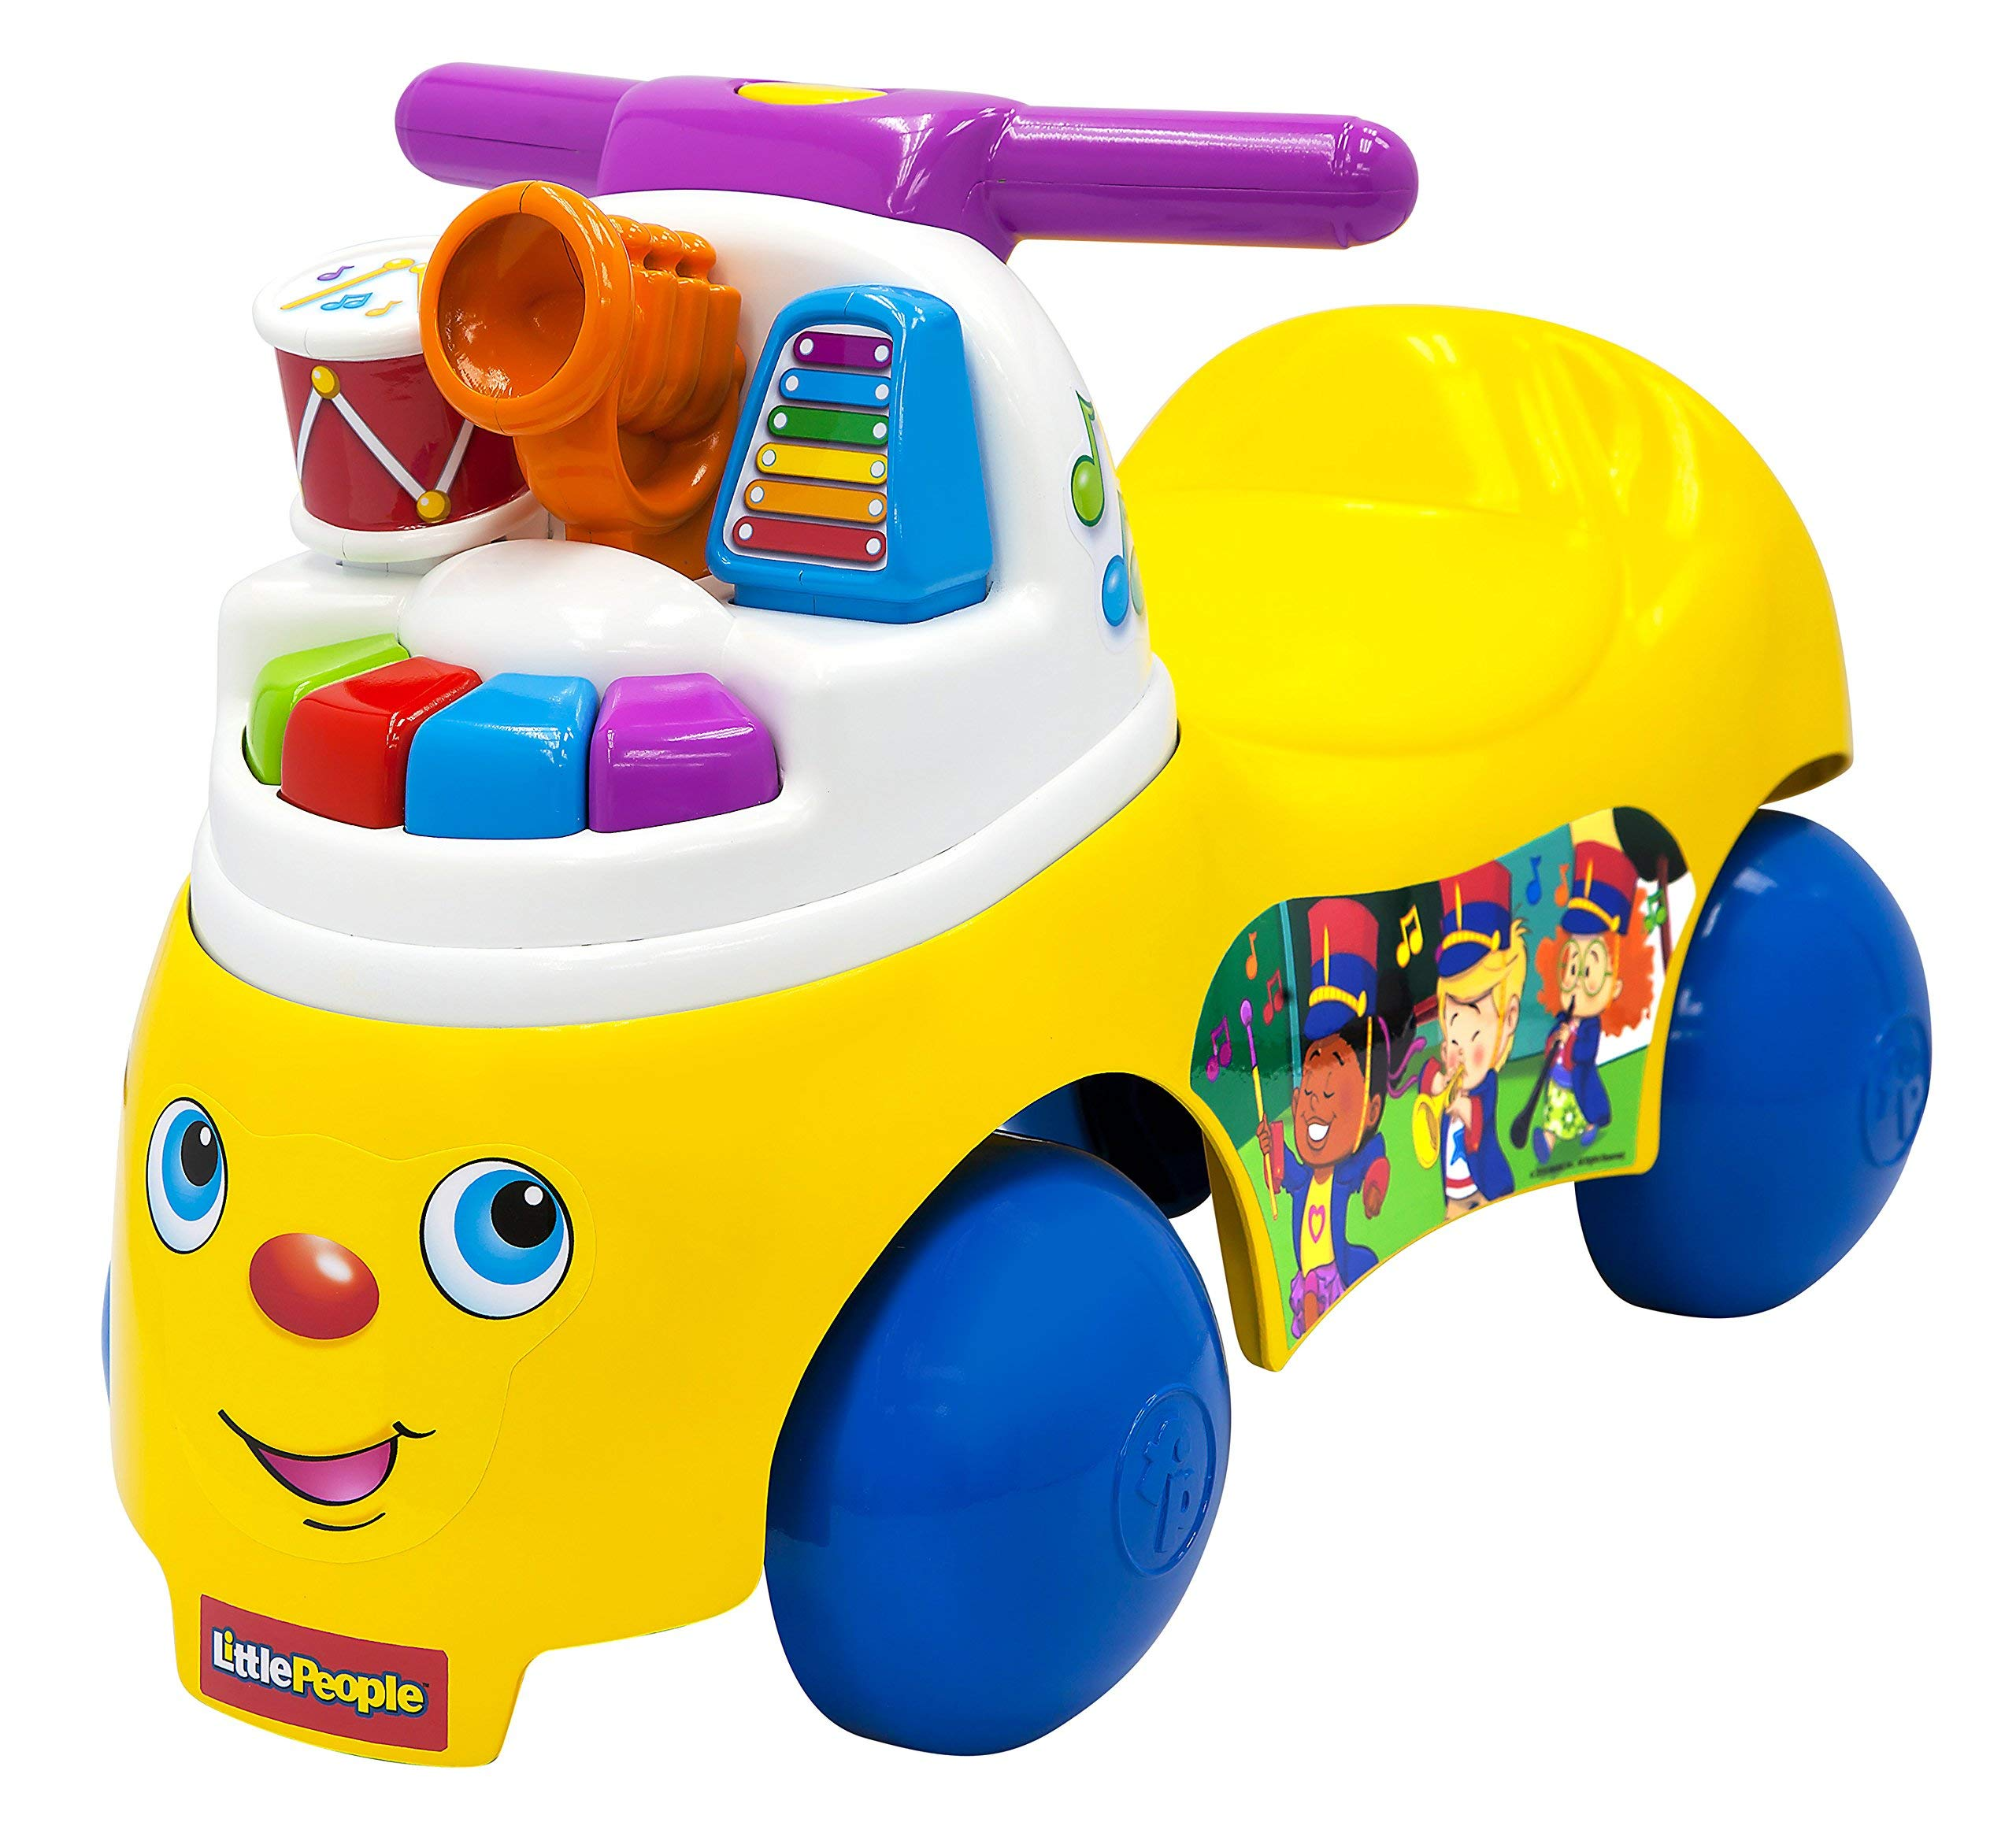 Fisher-Price Little People Melody Maker Ride-On [Amazon Exclusive] (Renewed)